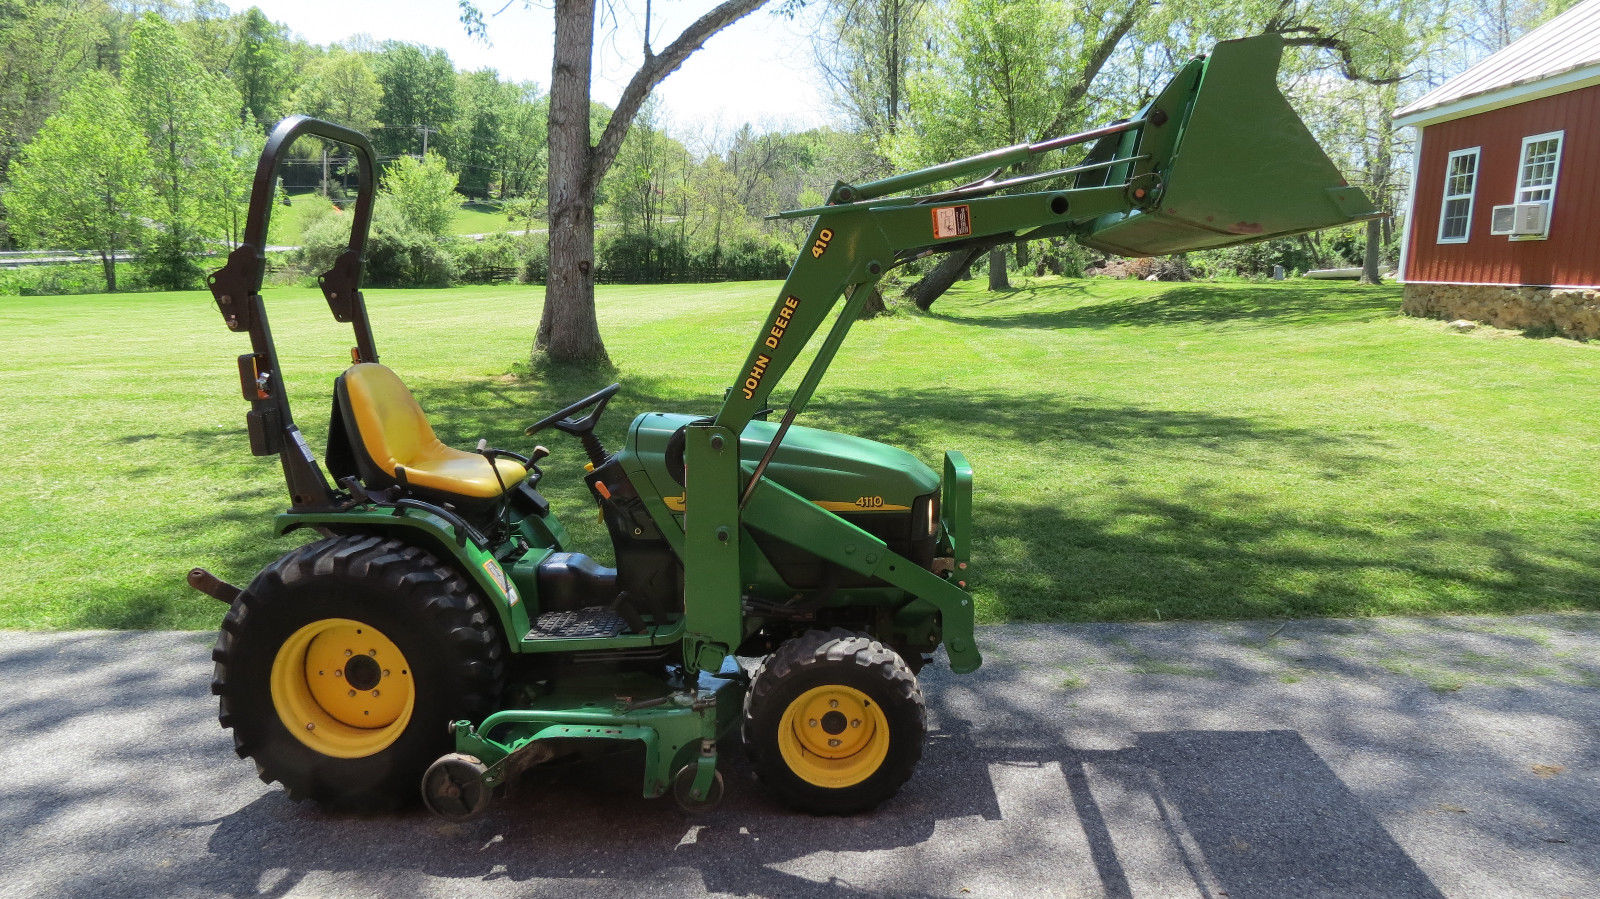 2003 JOHN DEERE 4110 4X4 COMPACT UTILITY TRACTOR W/ LOADER ...